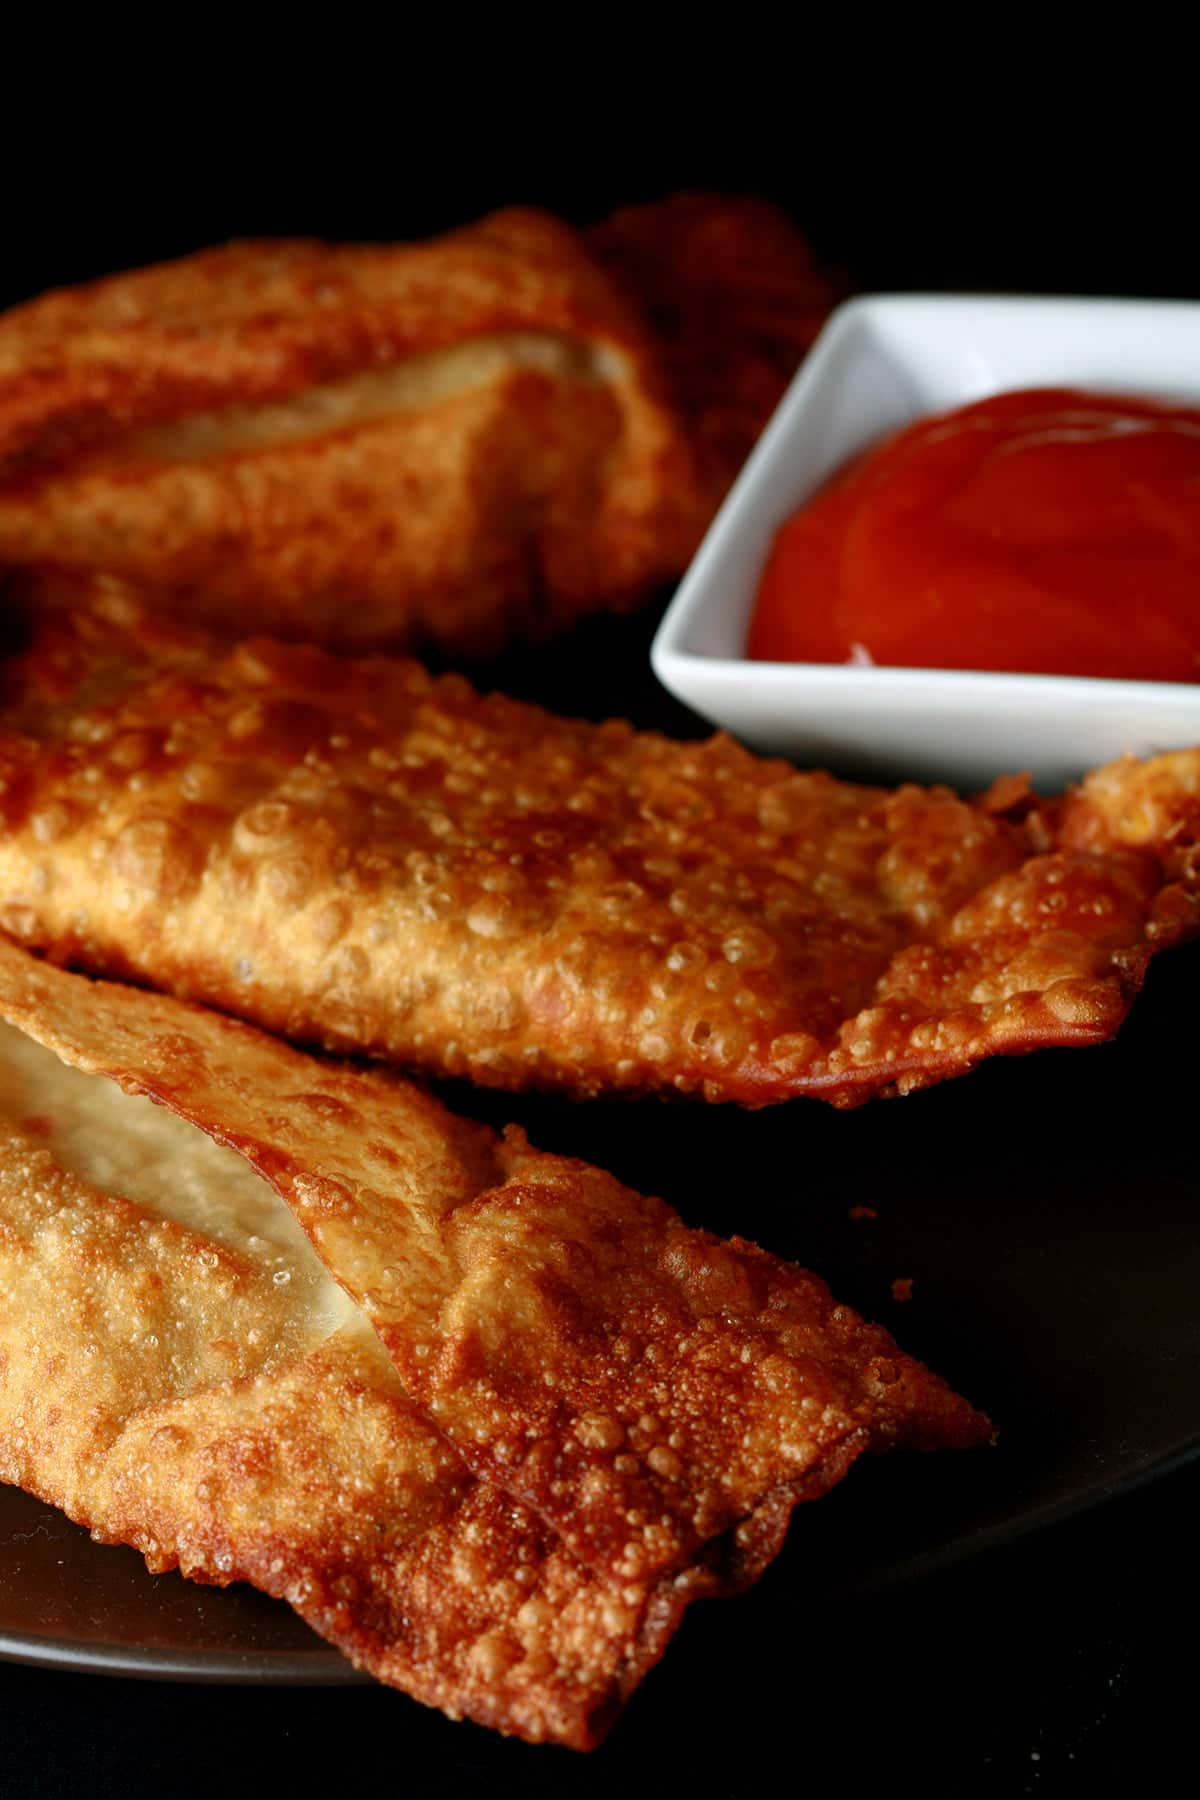 A small round plate holds several halifax styleegg rolls, next to a small bowl of deep orange plum sauce.